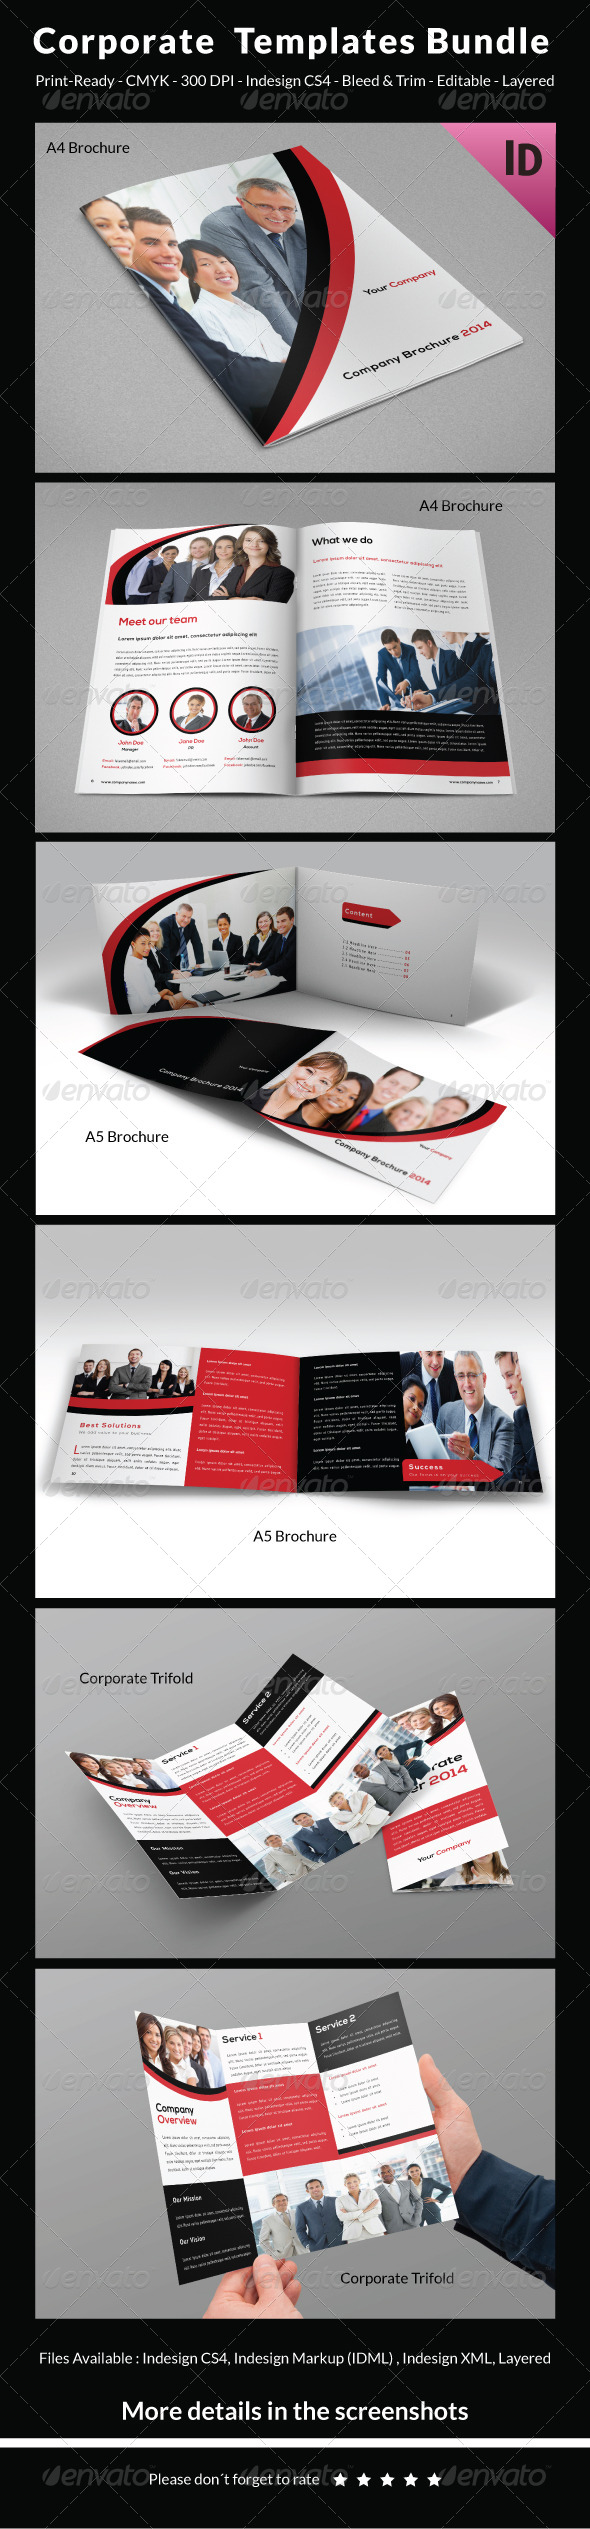 Corporate Templates Bundle - Brochures Print Templates